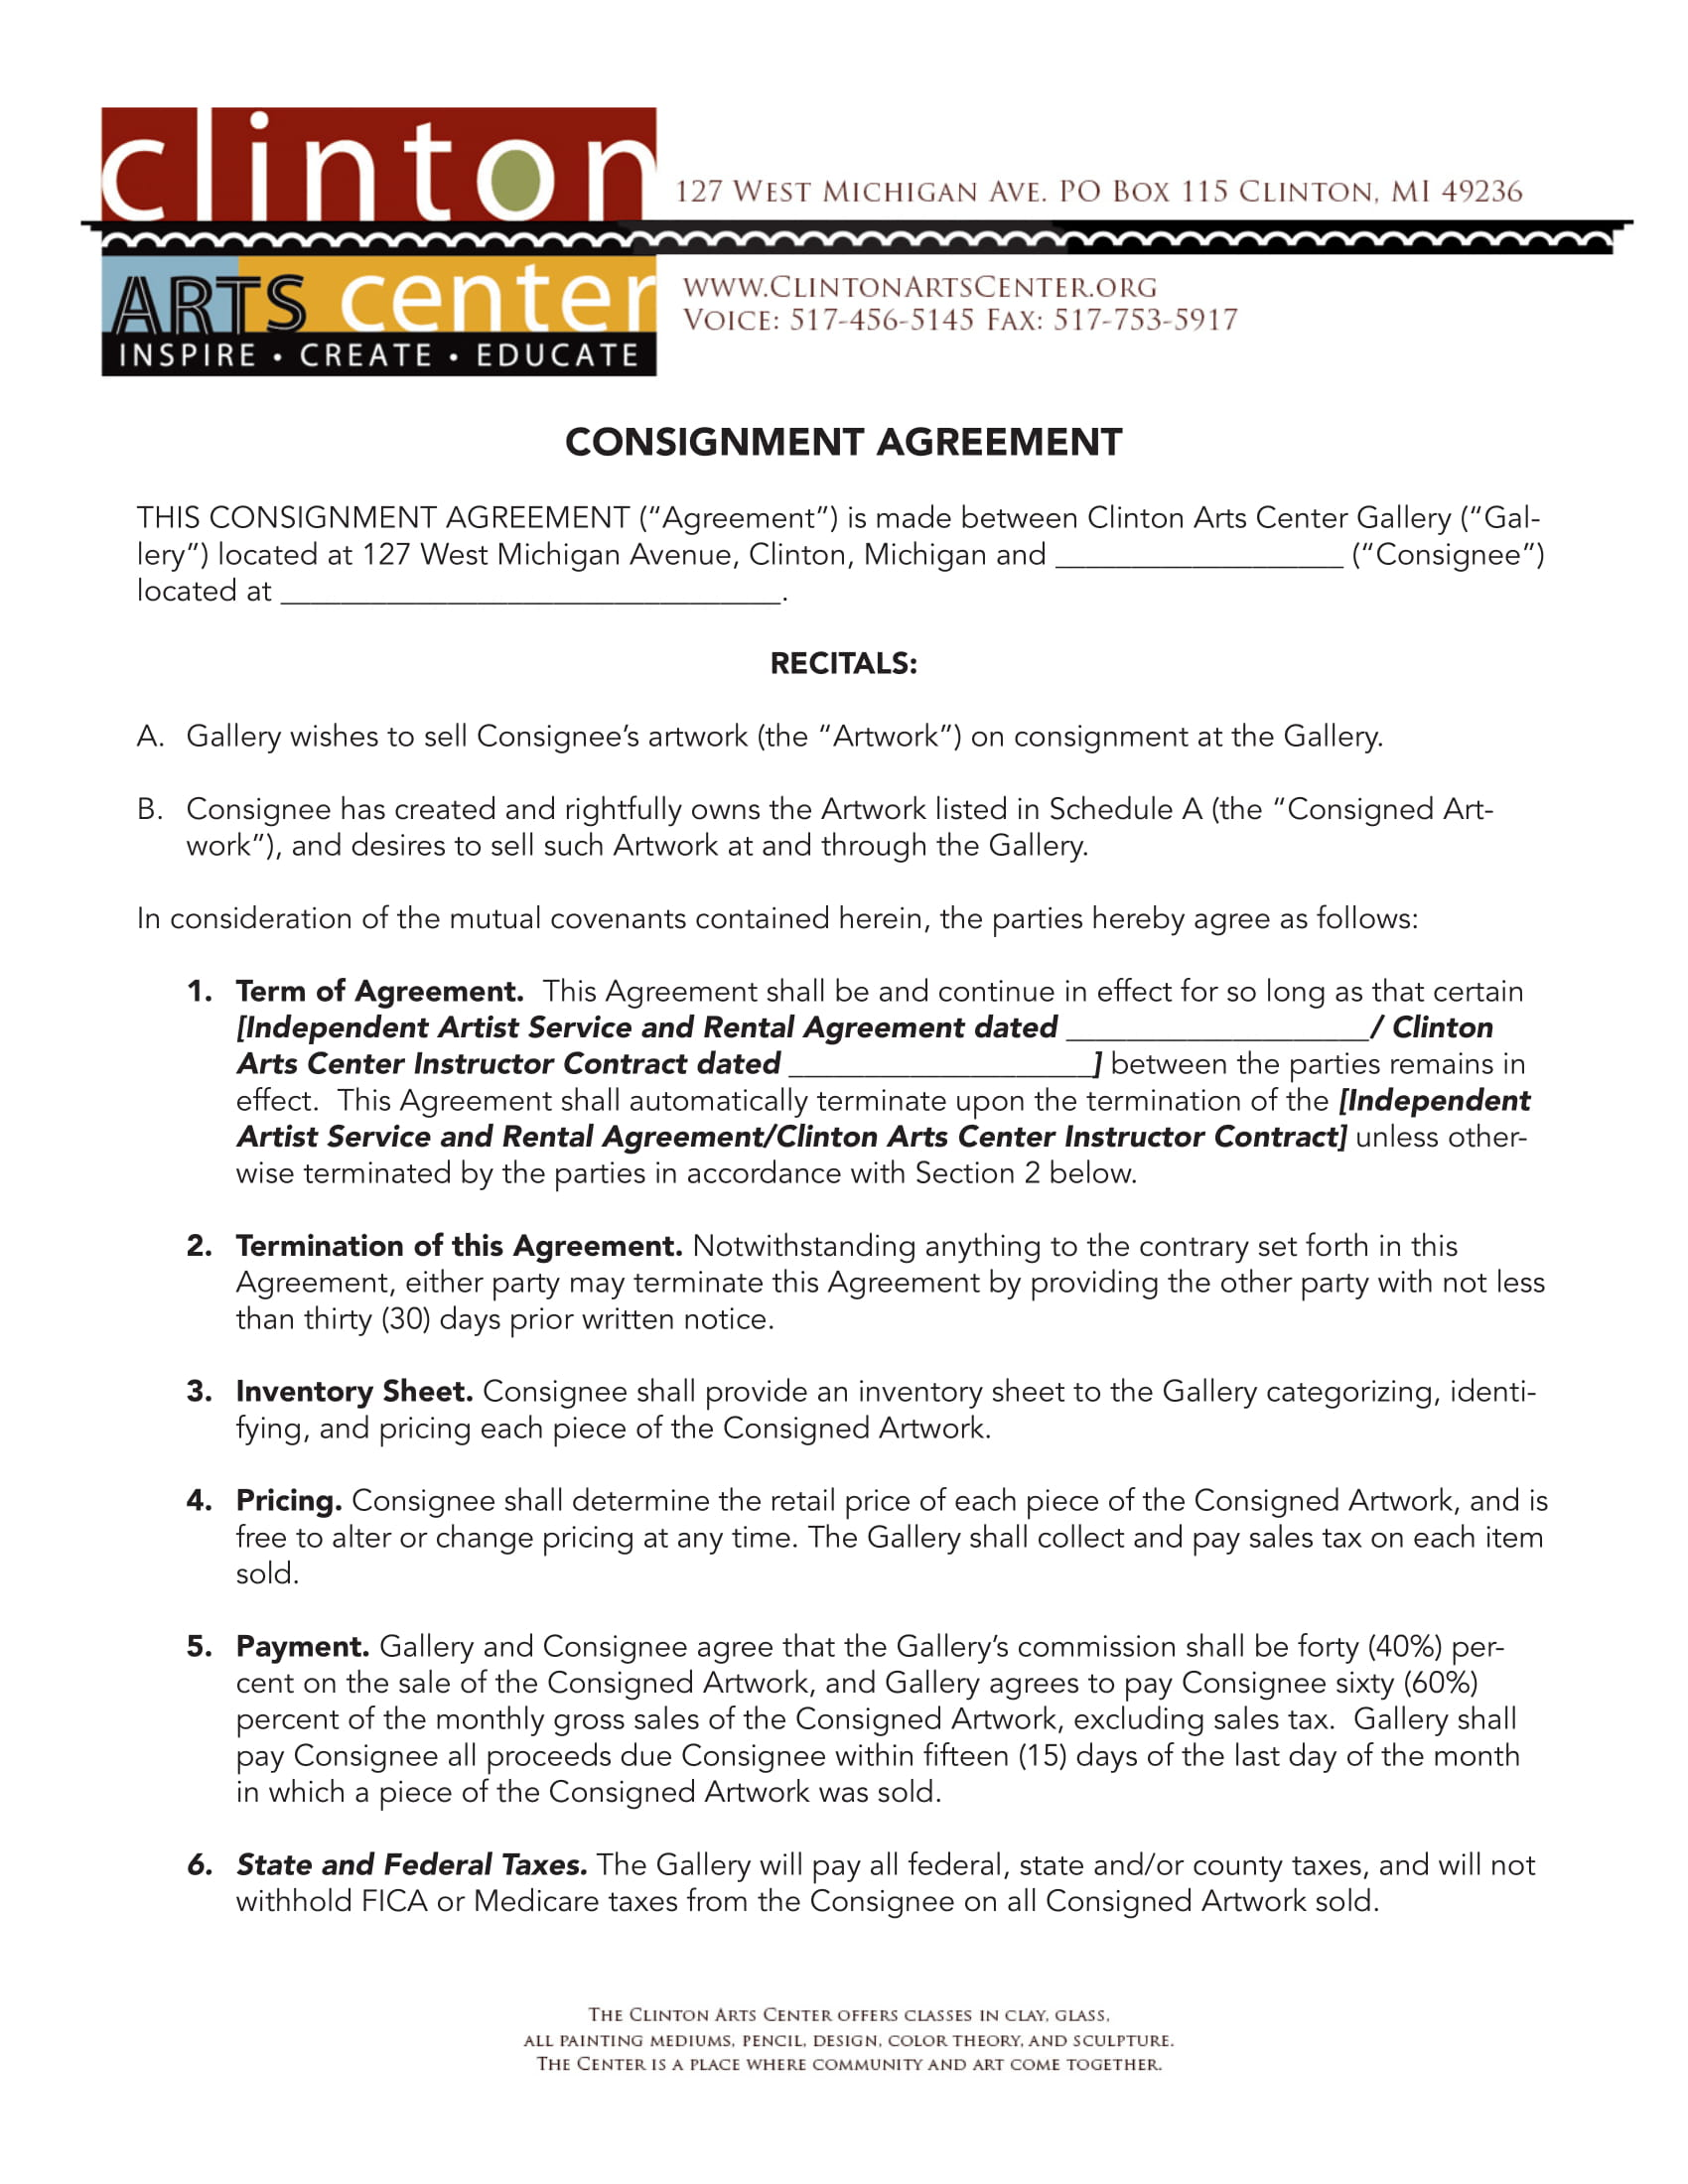 art work consignment agreement example